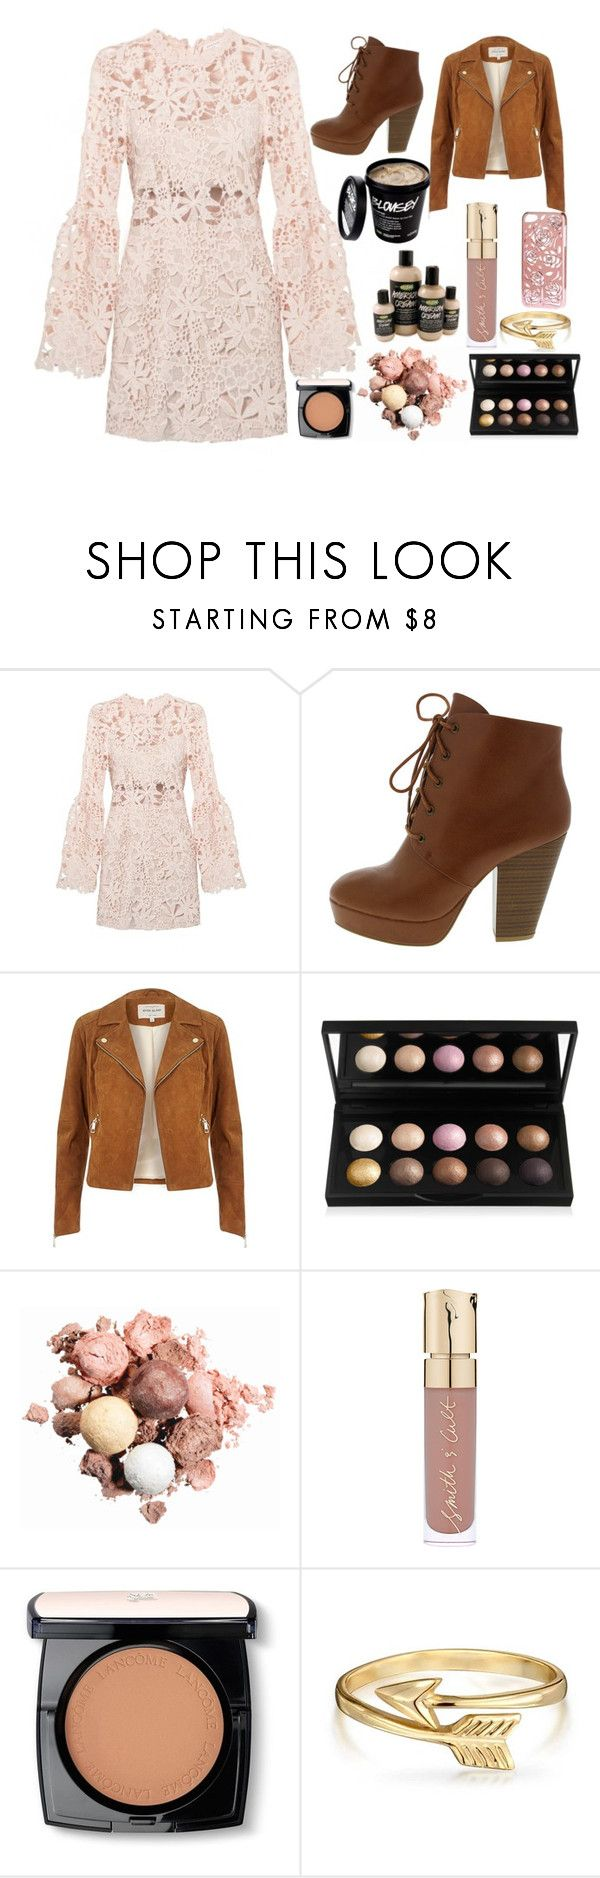 """""""Country girls"""" by ejturkey ❤ liked on Polyvore featuring River Island, Smith & Cult, Lancôme, Bling Jewelry, H&M and country"""